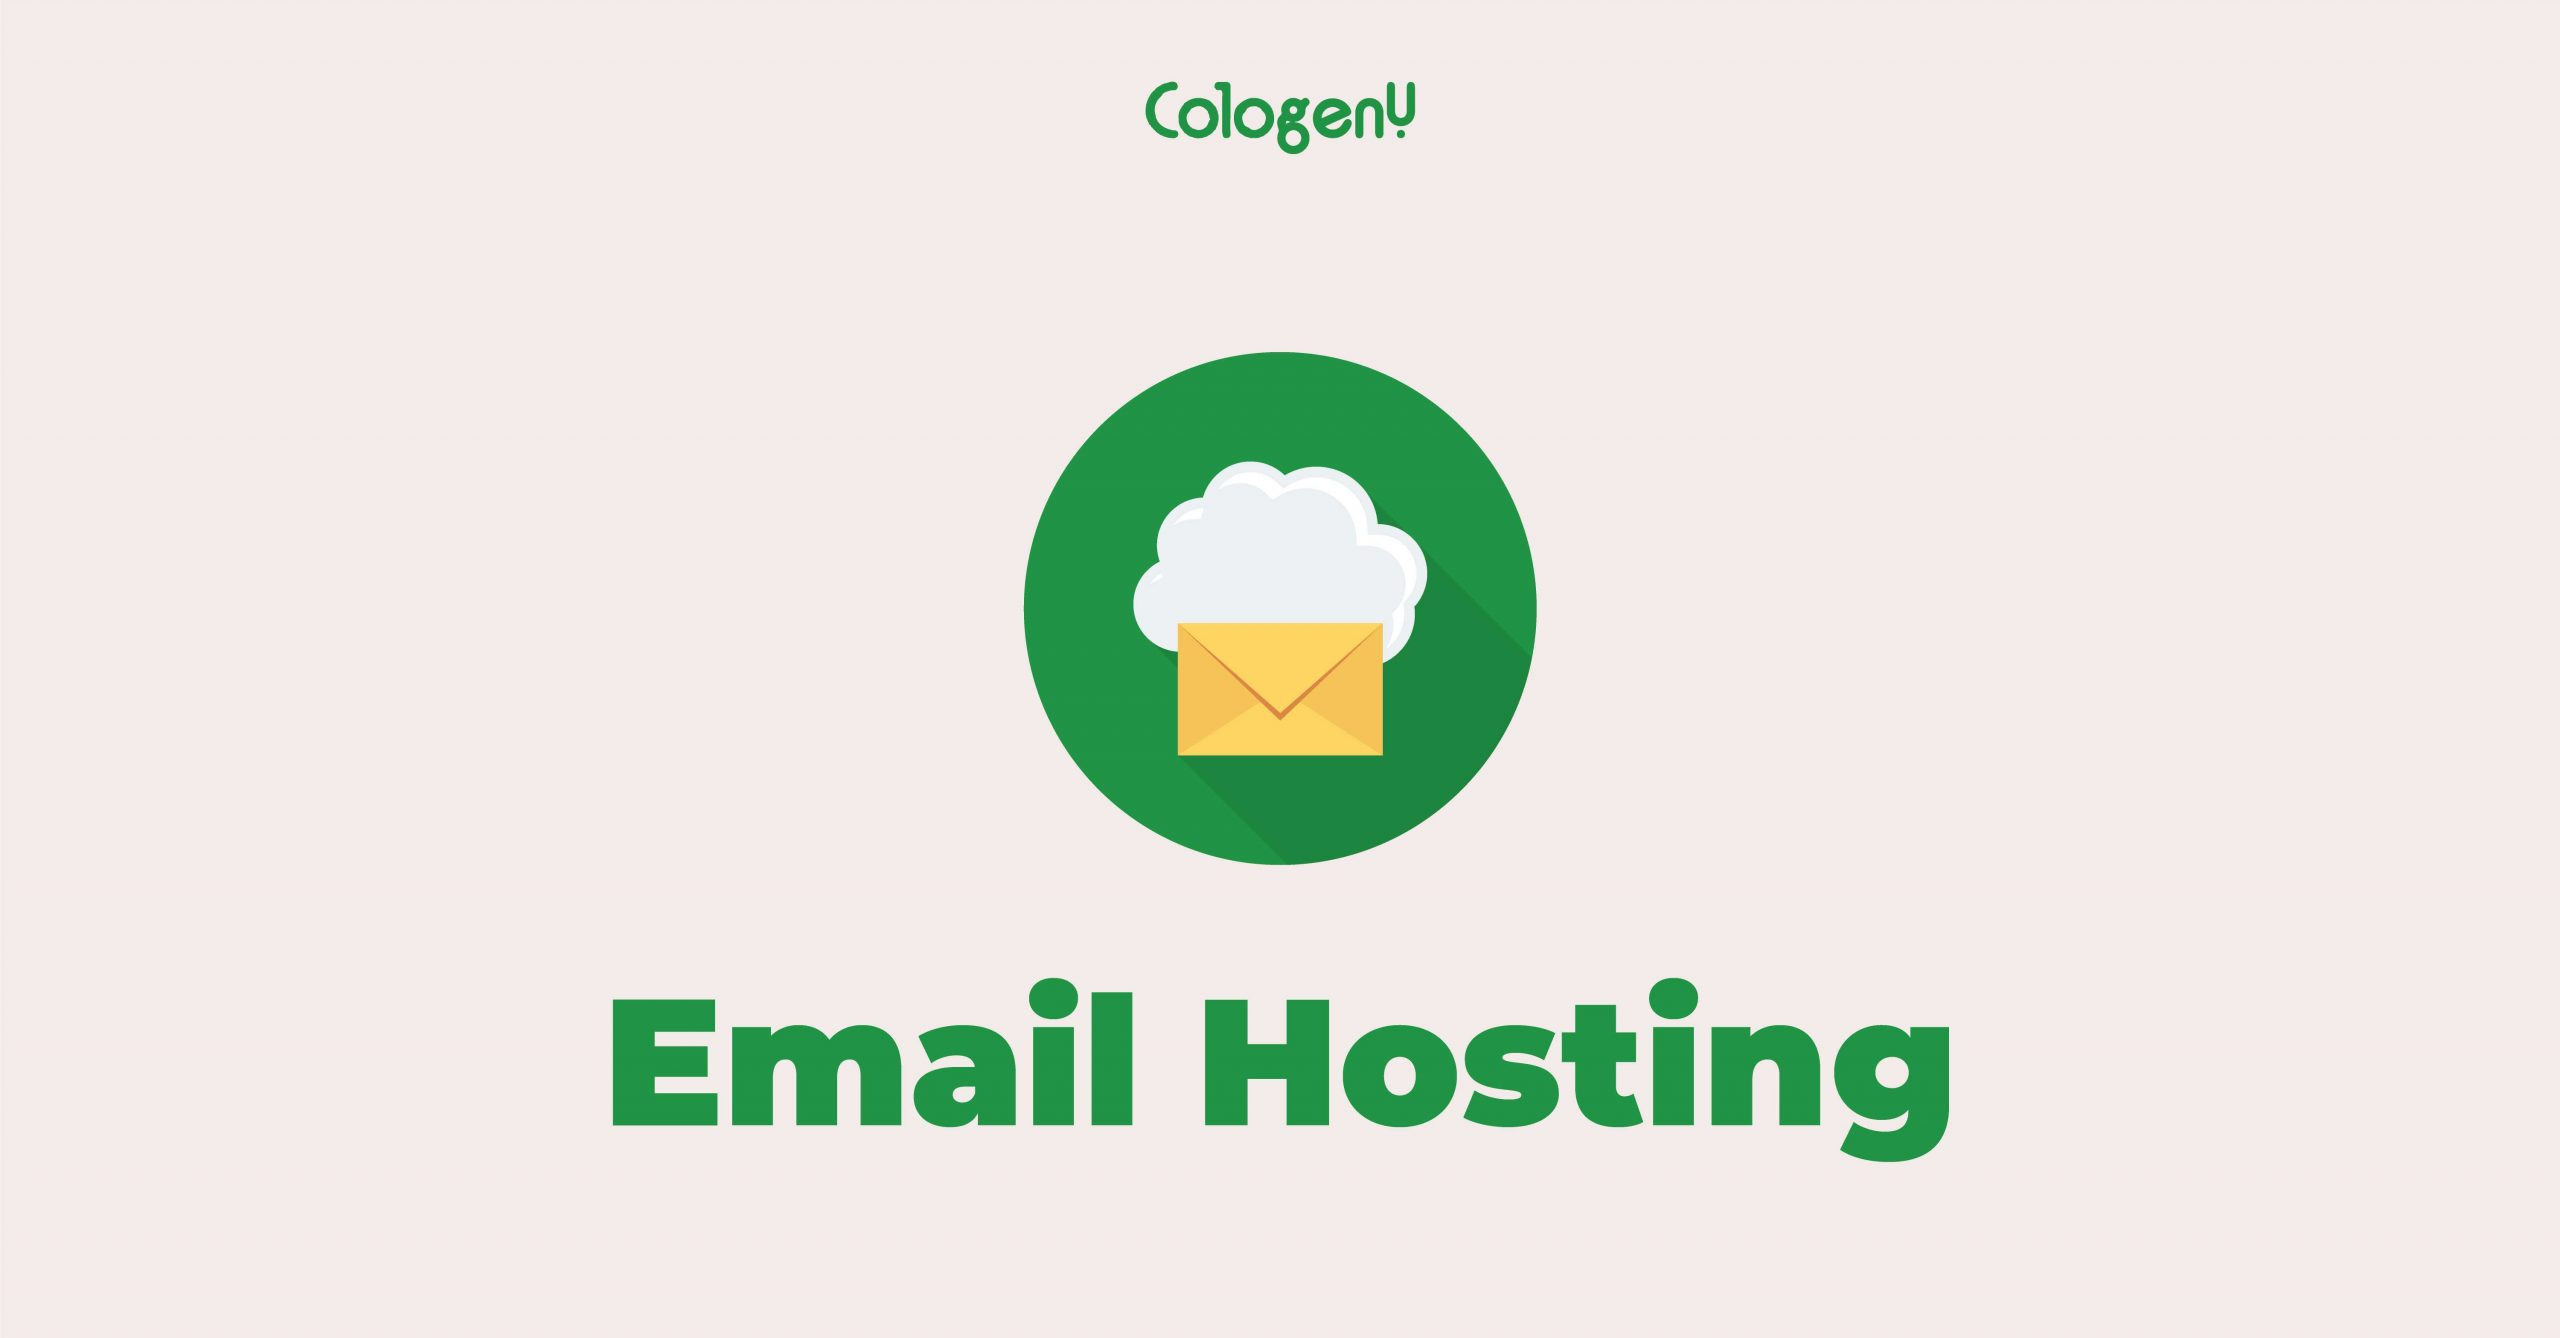 Email Hosting: What is Email Hosting?